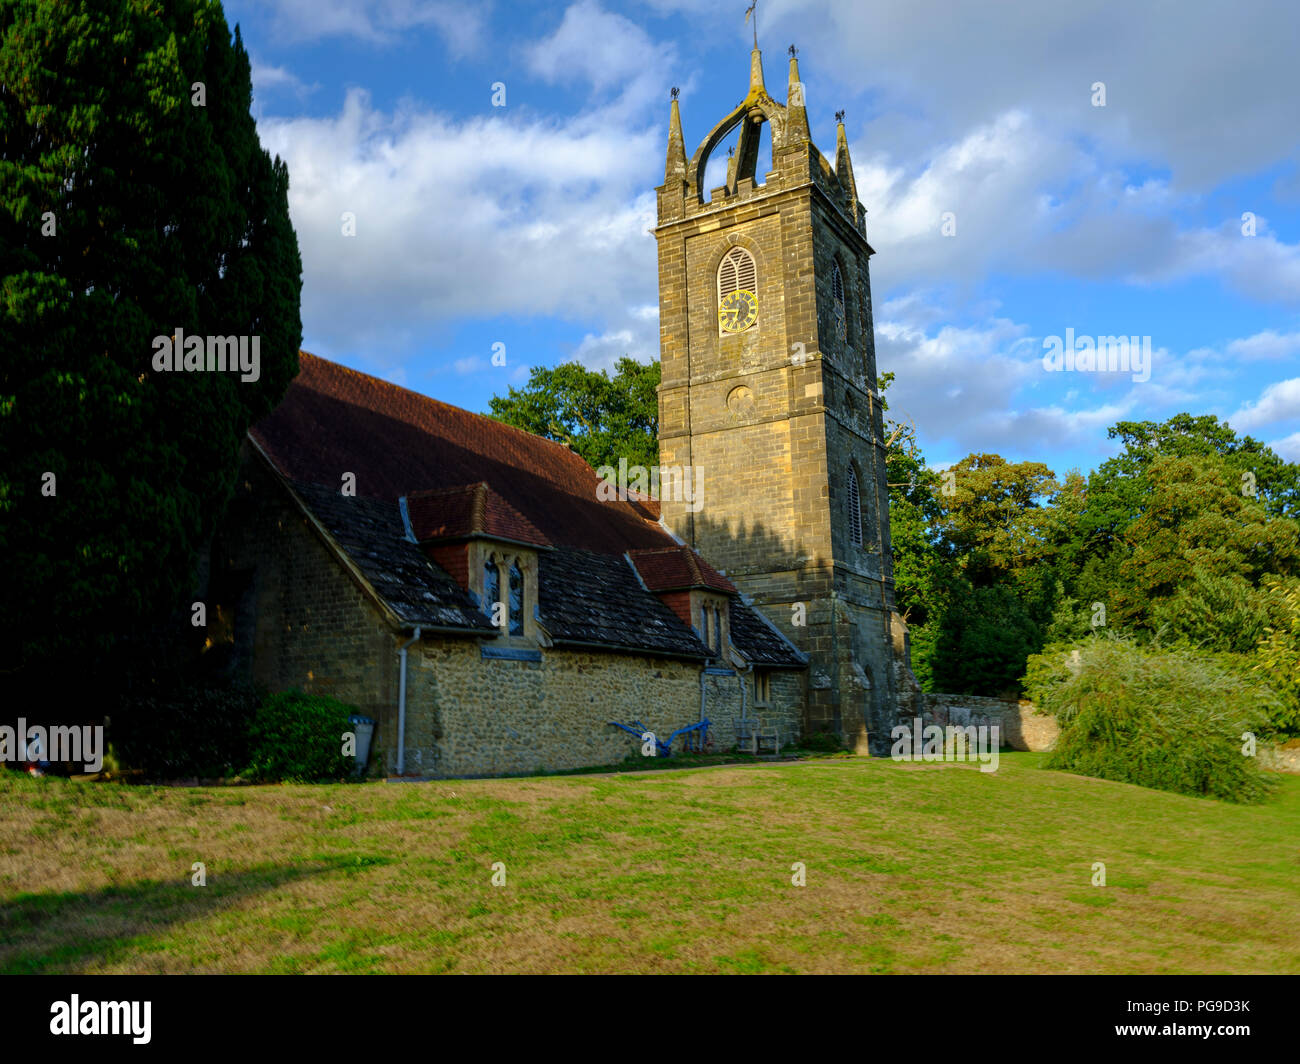 Late afternoon summer light on All Hallow's Church at Tillington next to the Petworth Estate in the South Downs National Park, West Sussex, UK Stock Photo